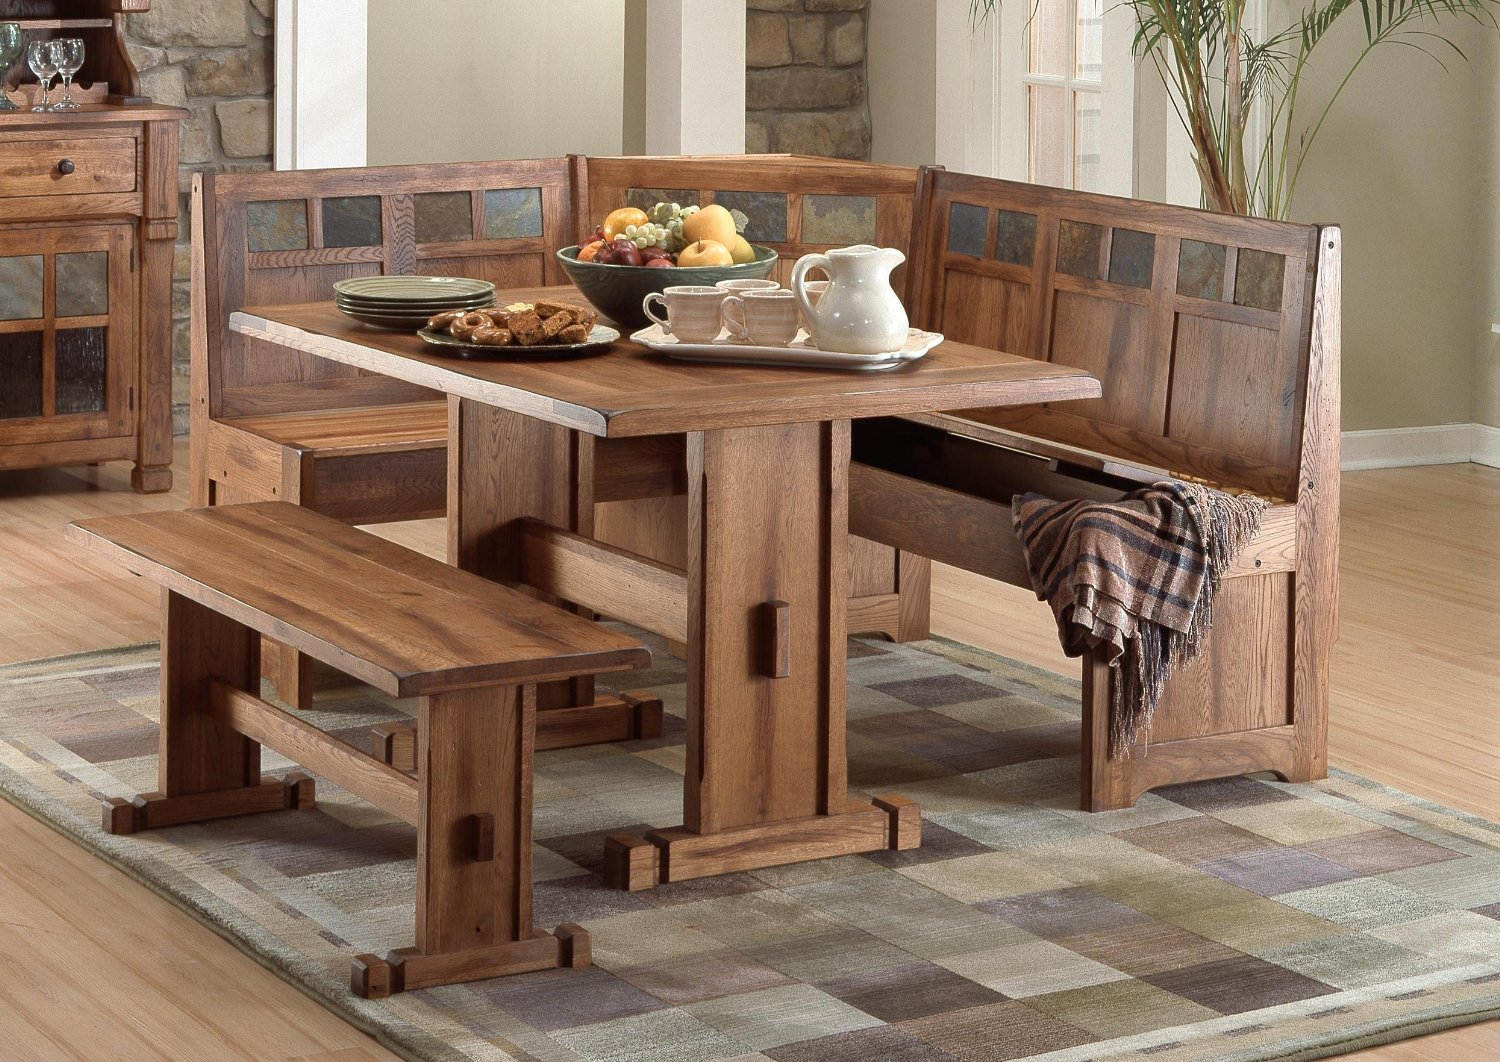 Kitchen table sets photo - 2